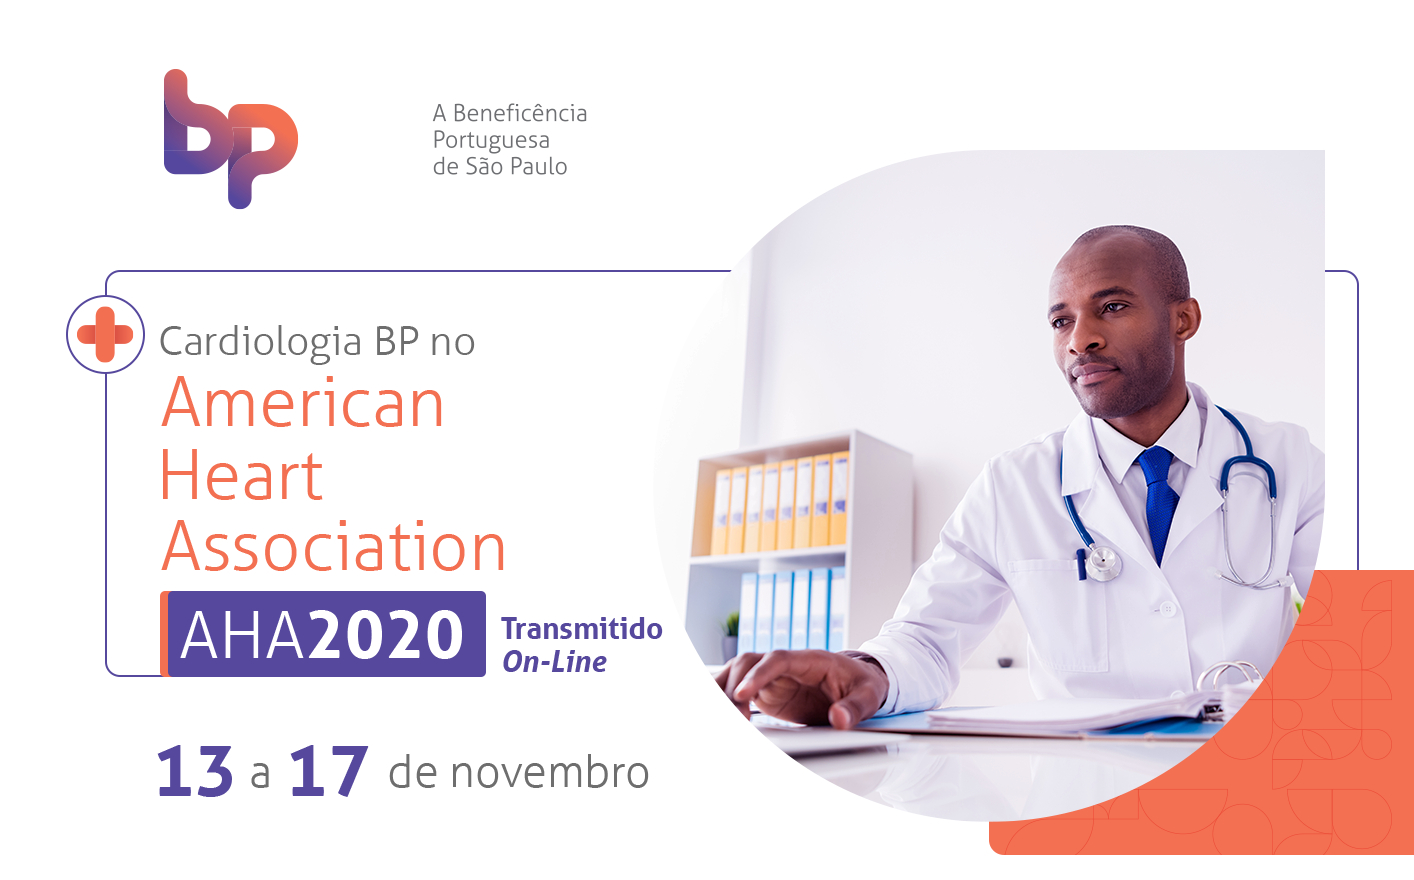 /crescer-juntos/cardiologia-bp-no-american-heart-association-aha-2020/